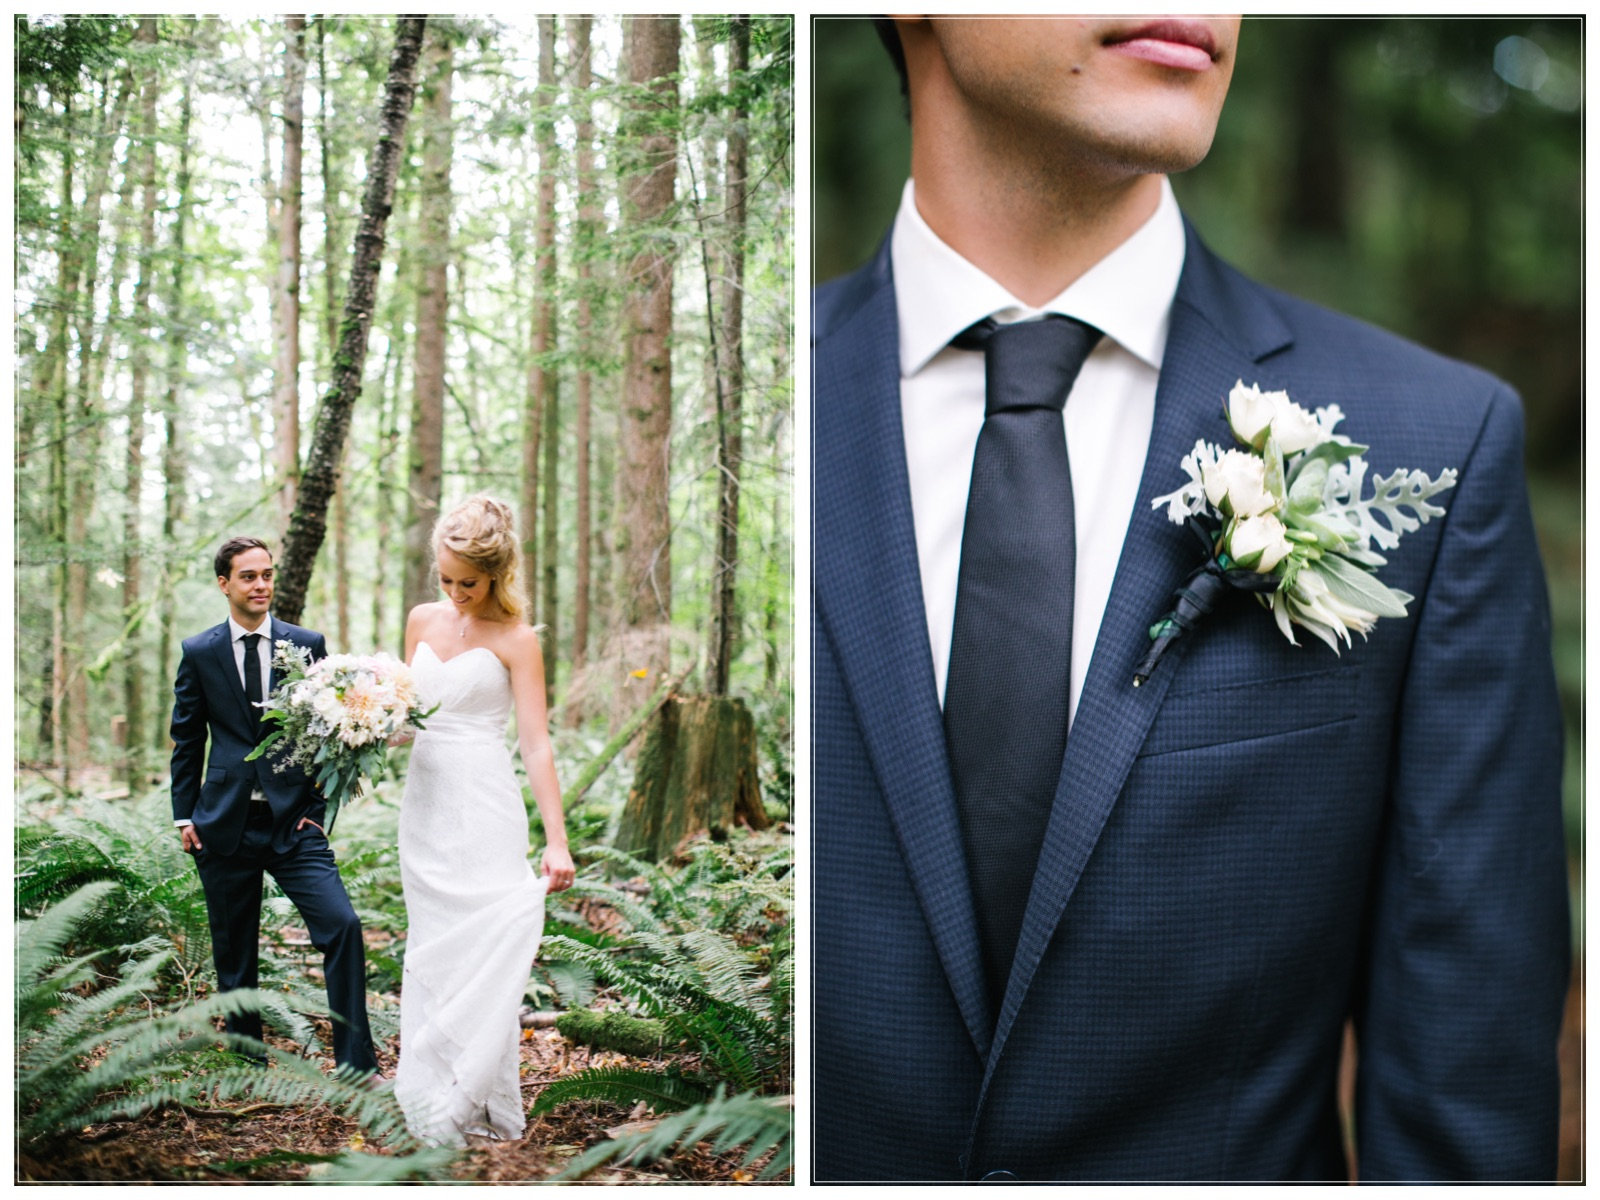 Bride with groom and groom's man boutonniere , by Floral design by lili , Abbotsford wedding florist.